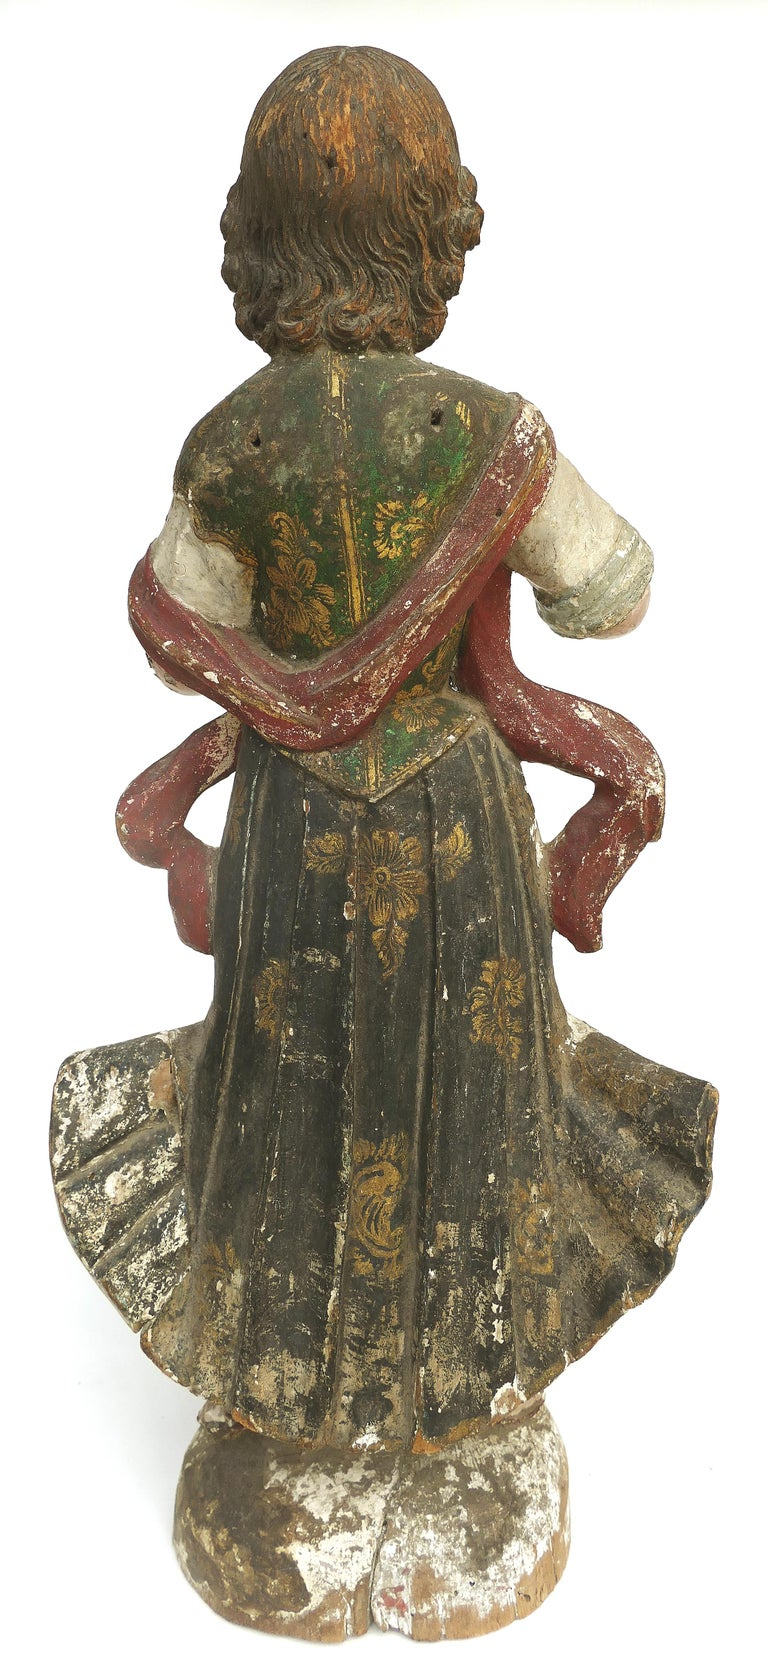 18th Century Ecclesiastical Carved Arcangel Sculpture, Gilt and Polychromed For Sale 1